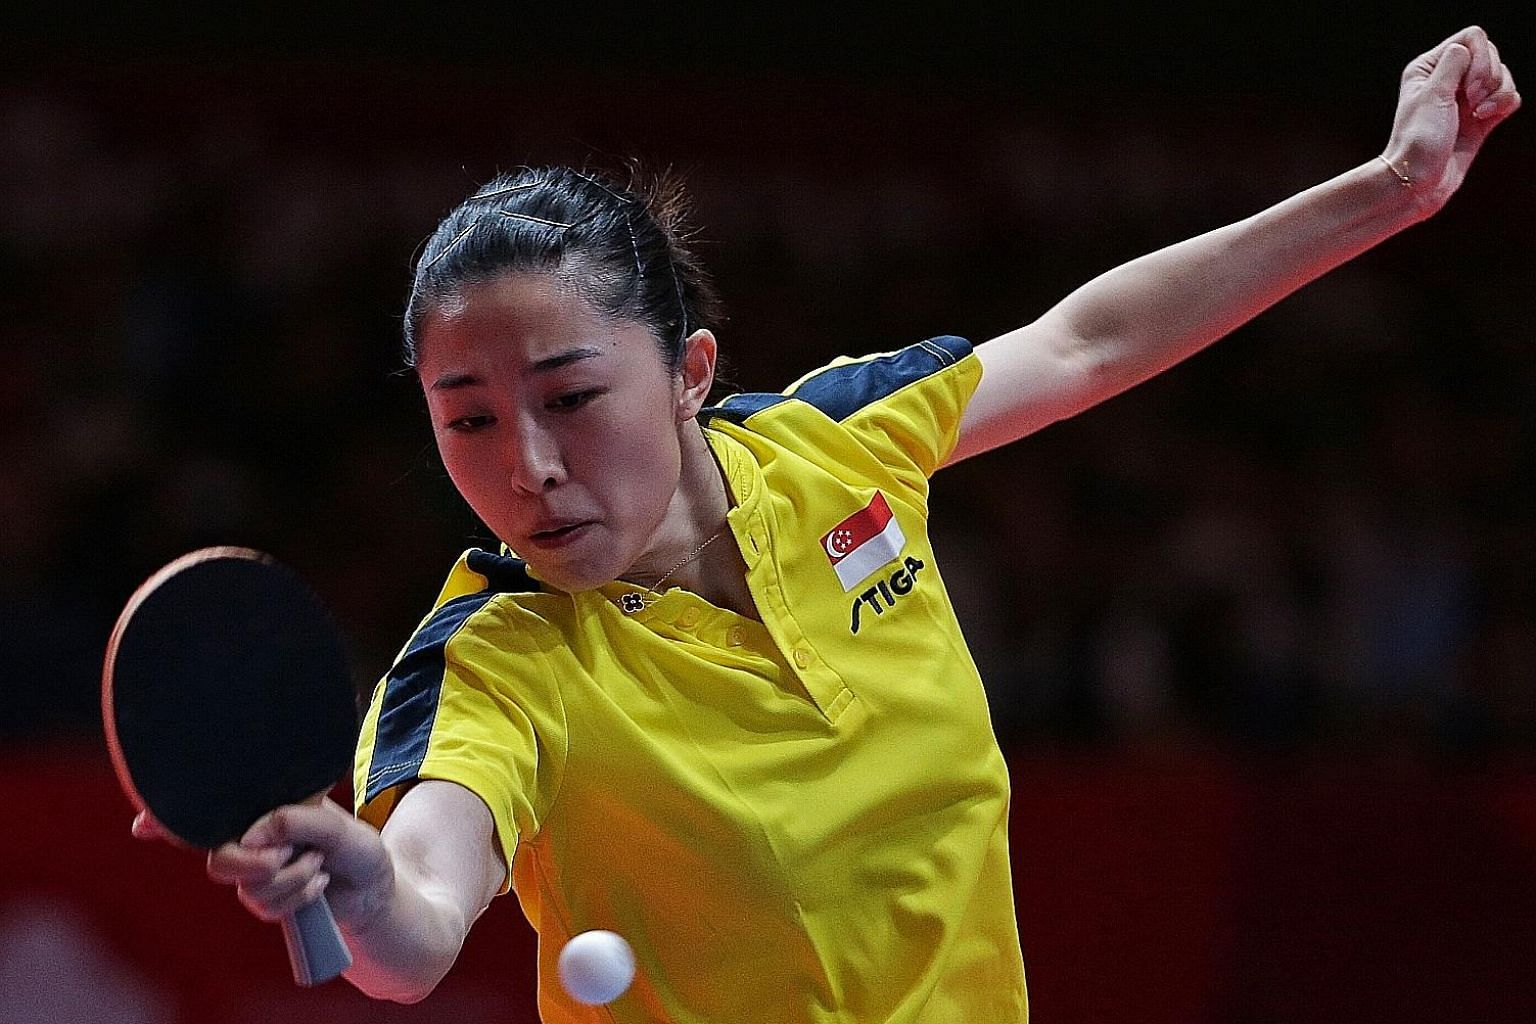 Things could well be looking up for Yu Mengyu, ahead of the 2020 Tokyo Olympics, after she won joint bronze in the table tennis singles - her first Asiad individual medal and Singapore's only medal in the sport at these Games.